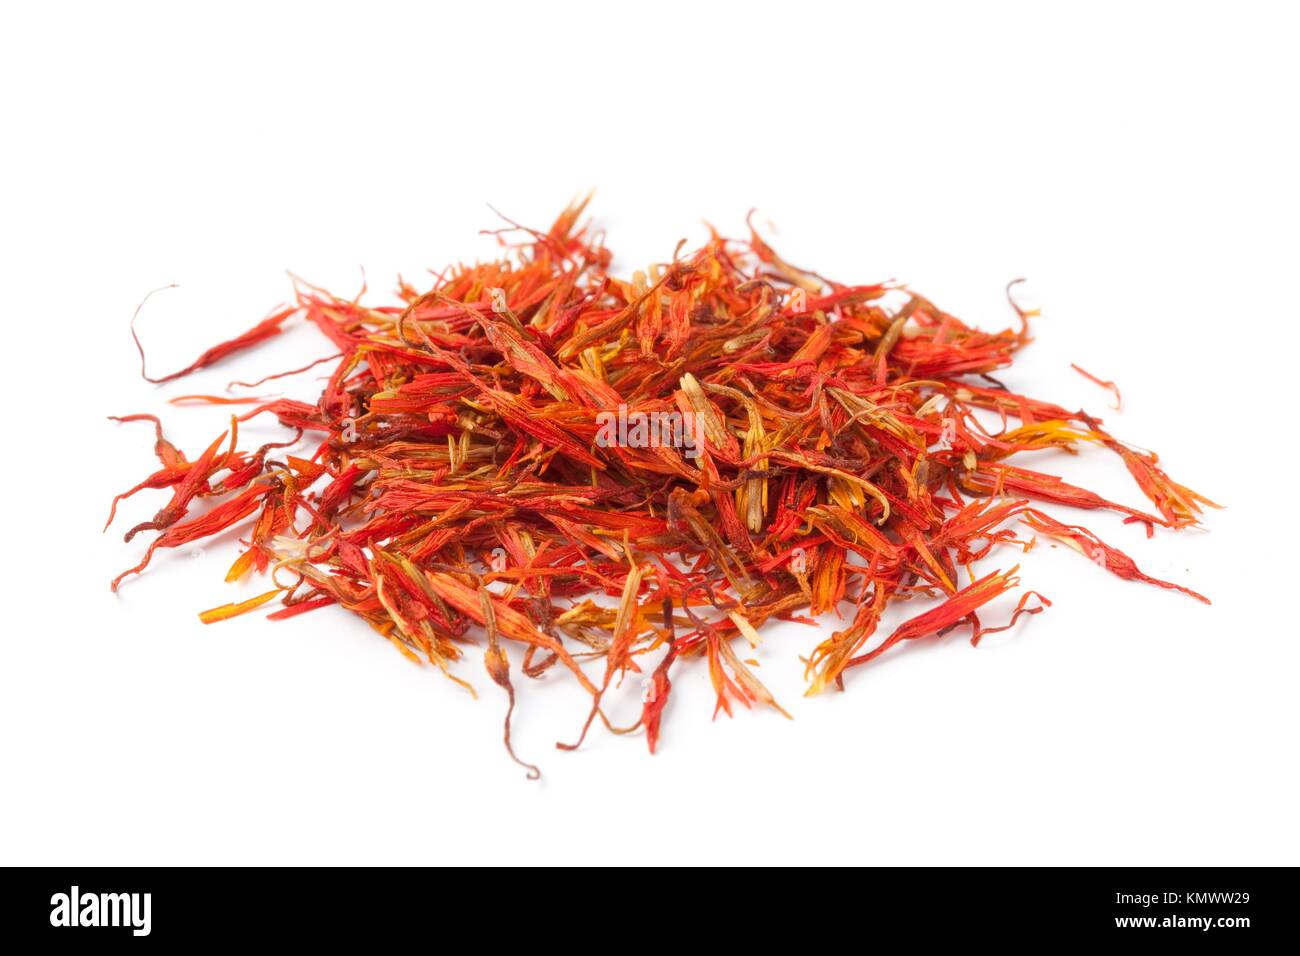 Pile of Saffron on white background - Stock Image